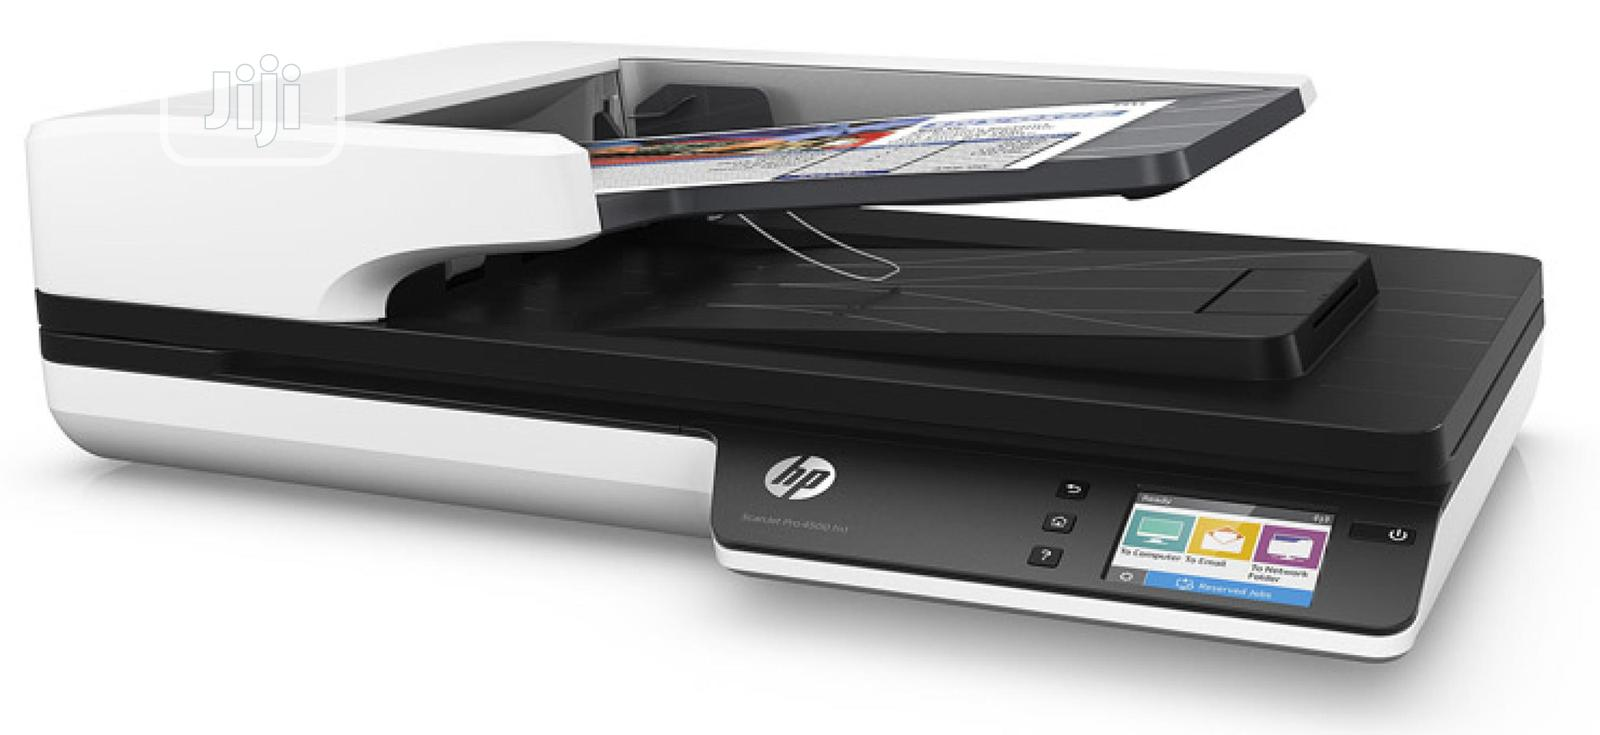 HP Scanjet PRO 4500 Fn1 Network Scanner | Printers & Scanners for sale in Wuse 2, Abuja (FCT) State, Nigeria